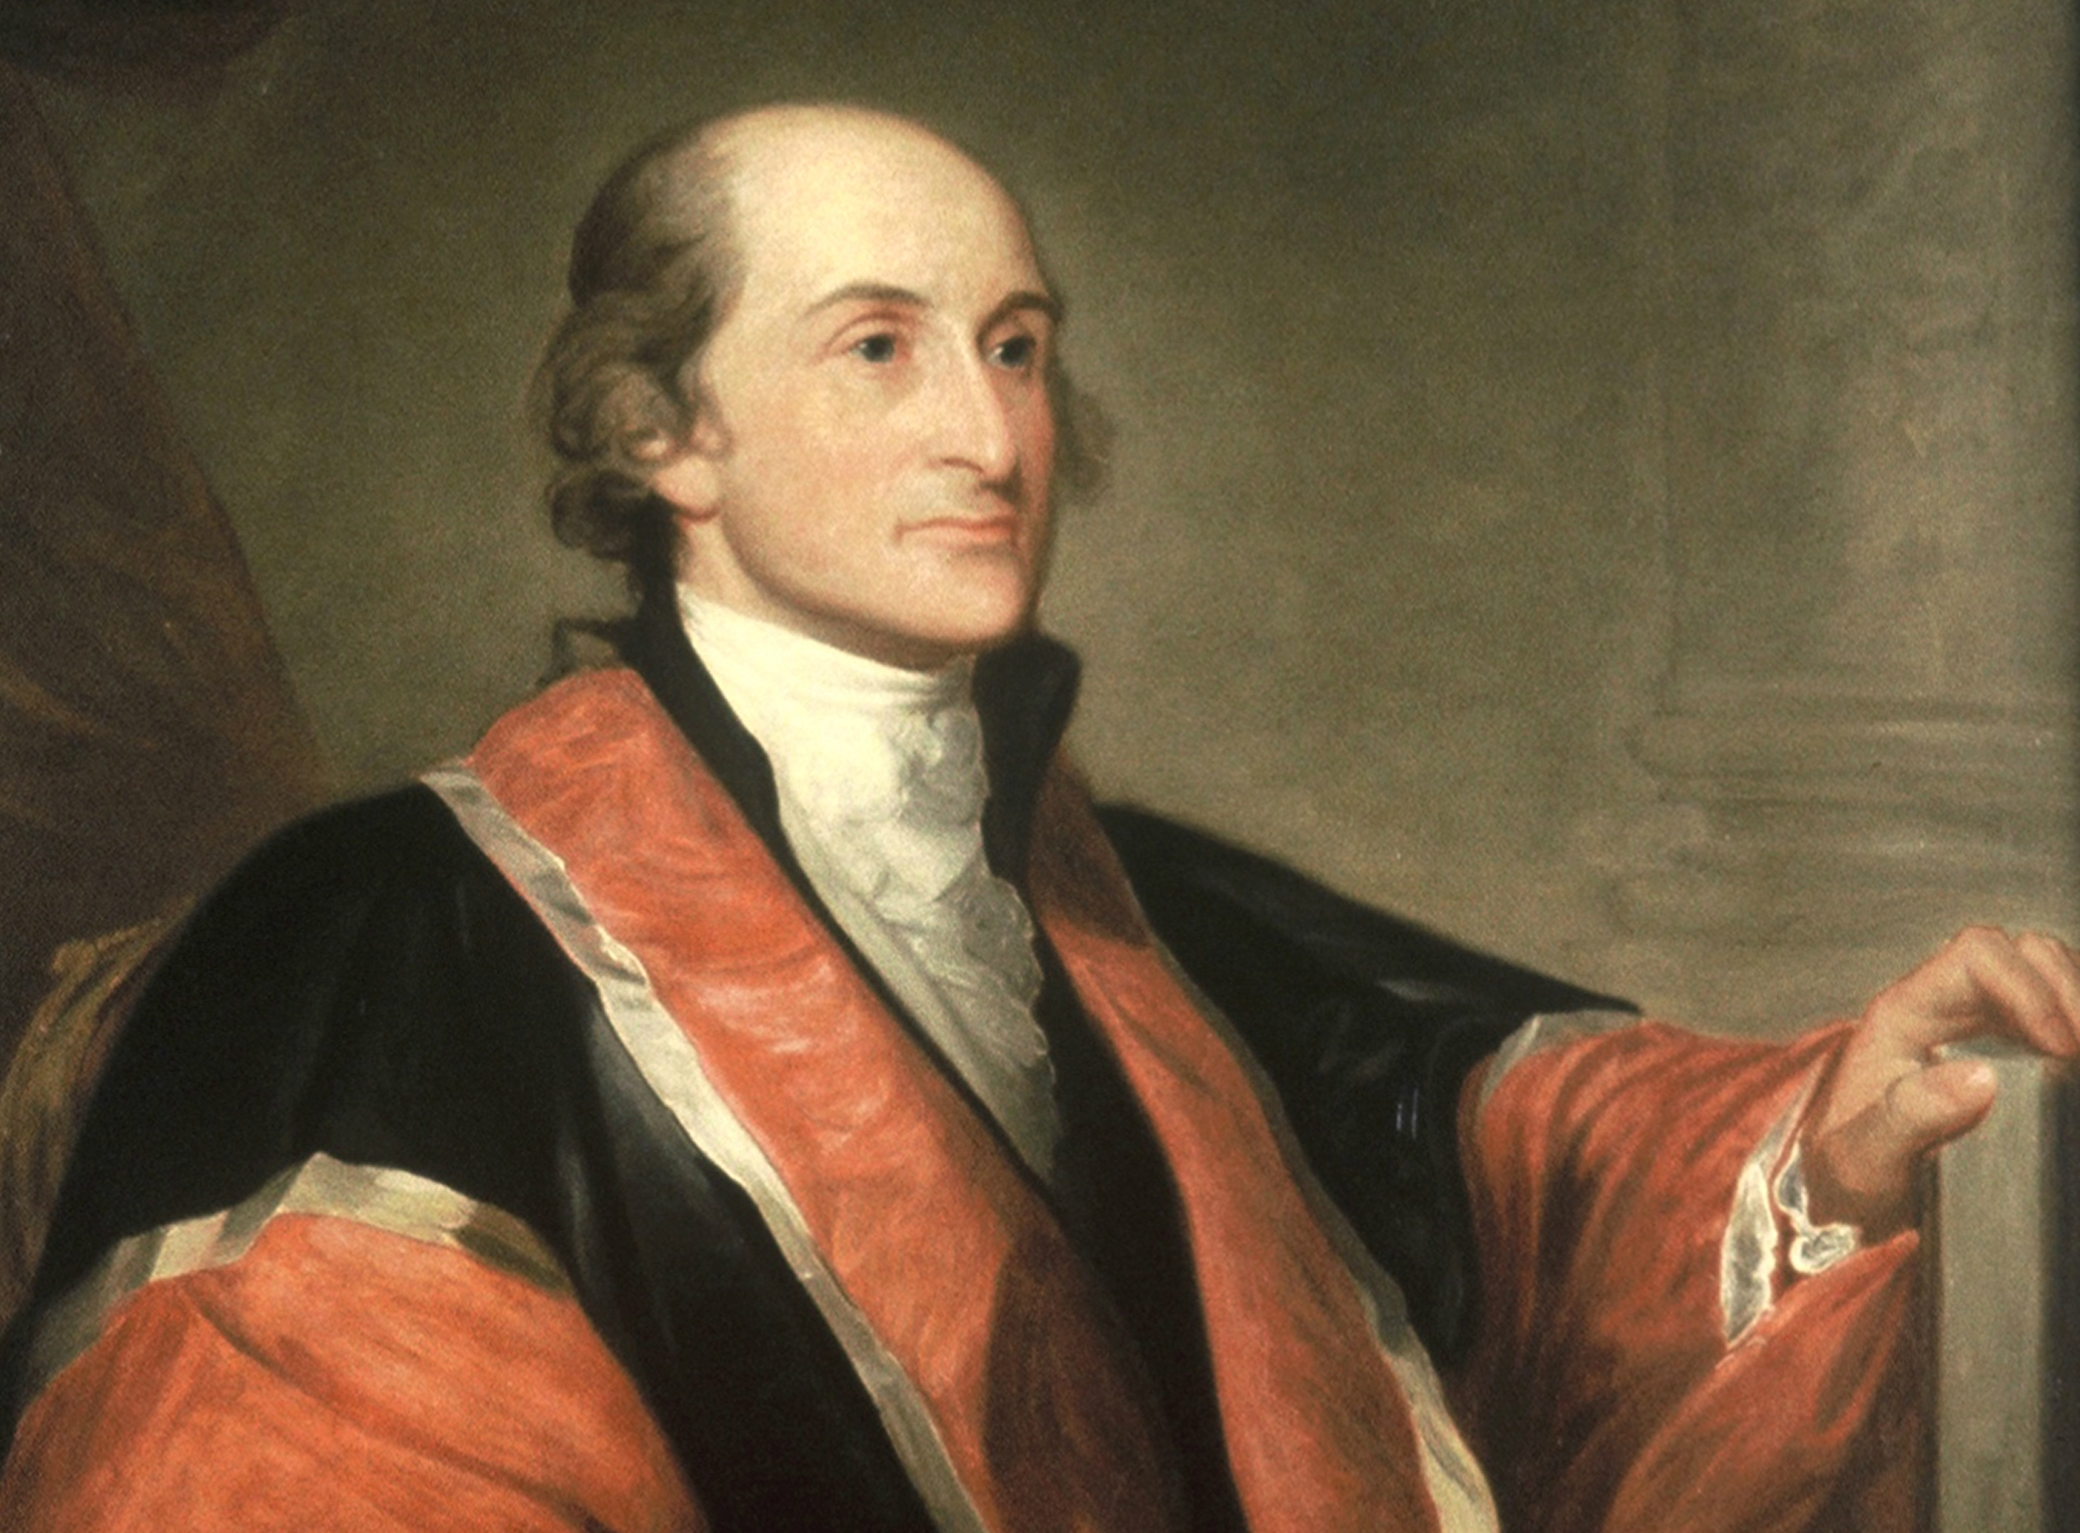 Portrait of John Jay